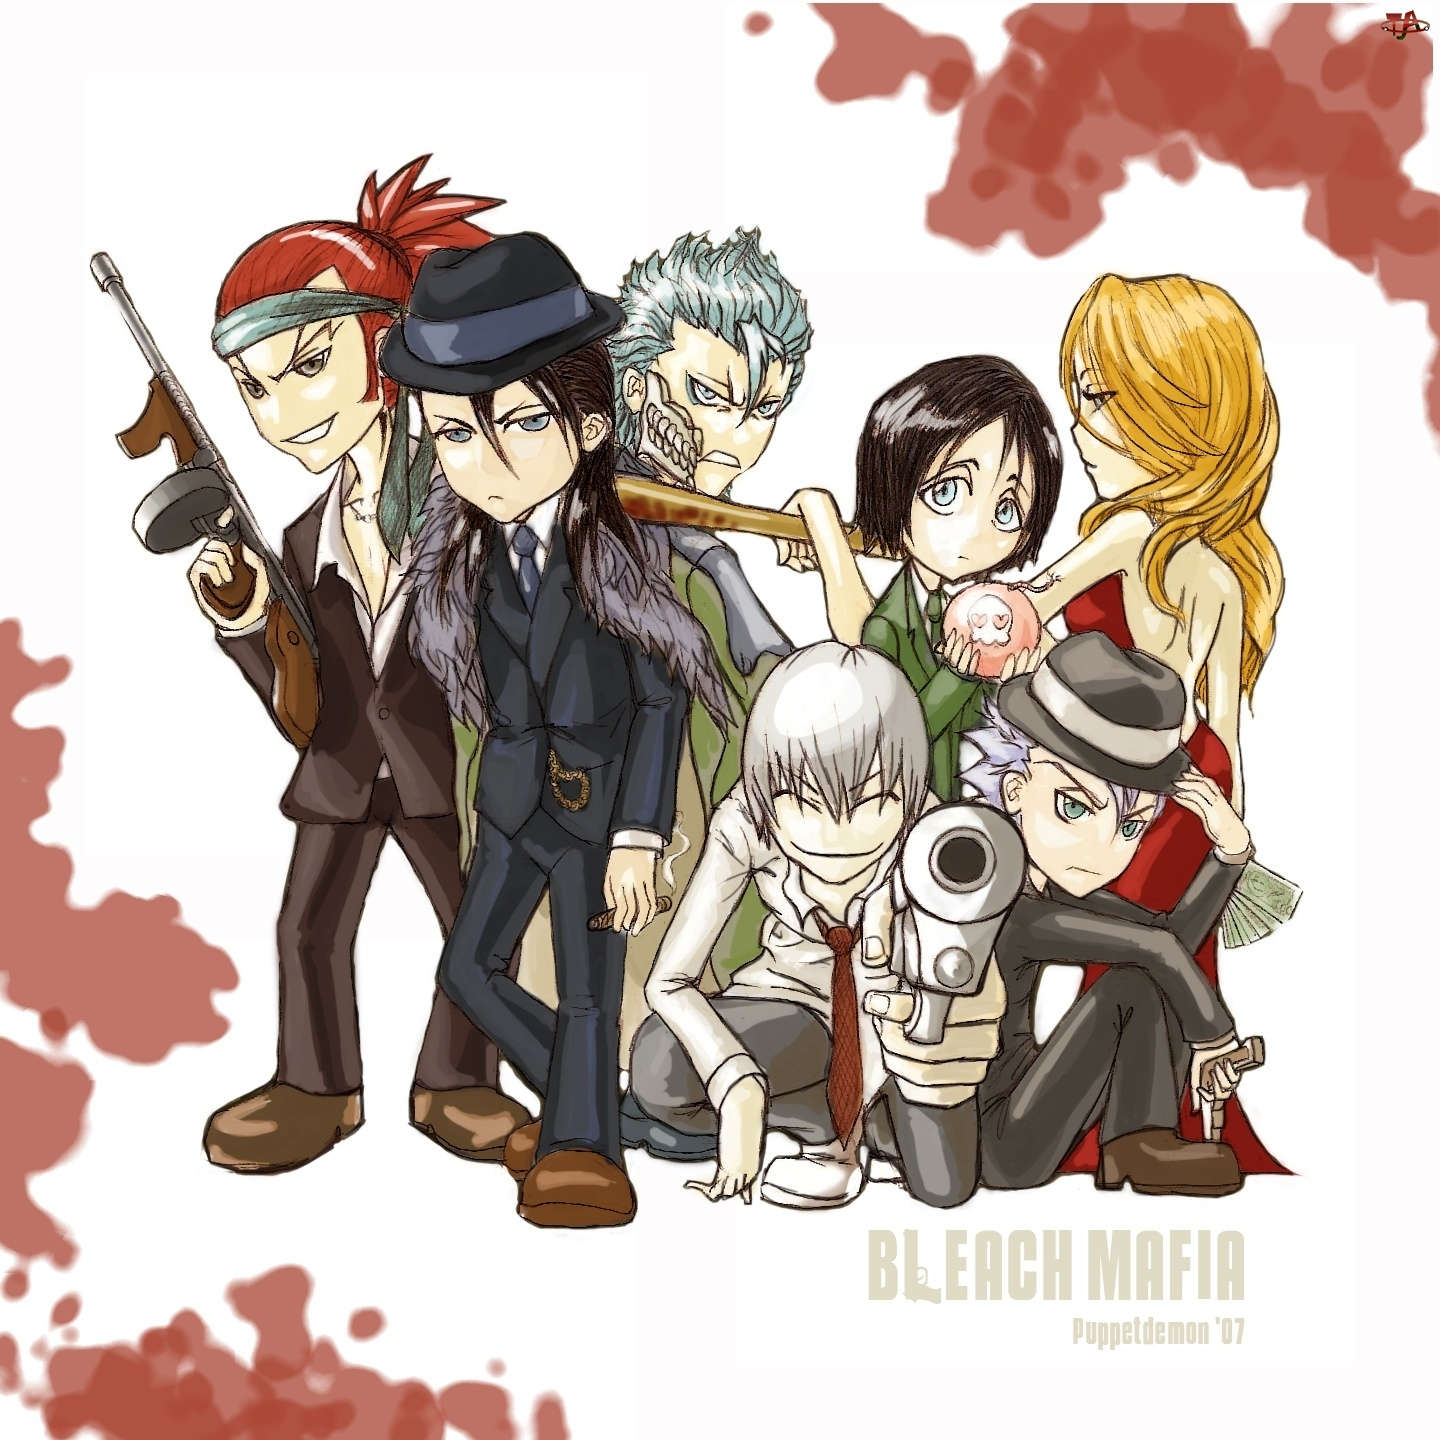 Mafia, Gangster, Bleach